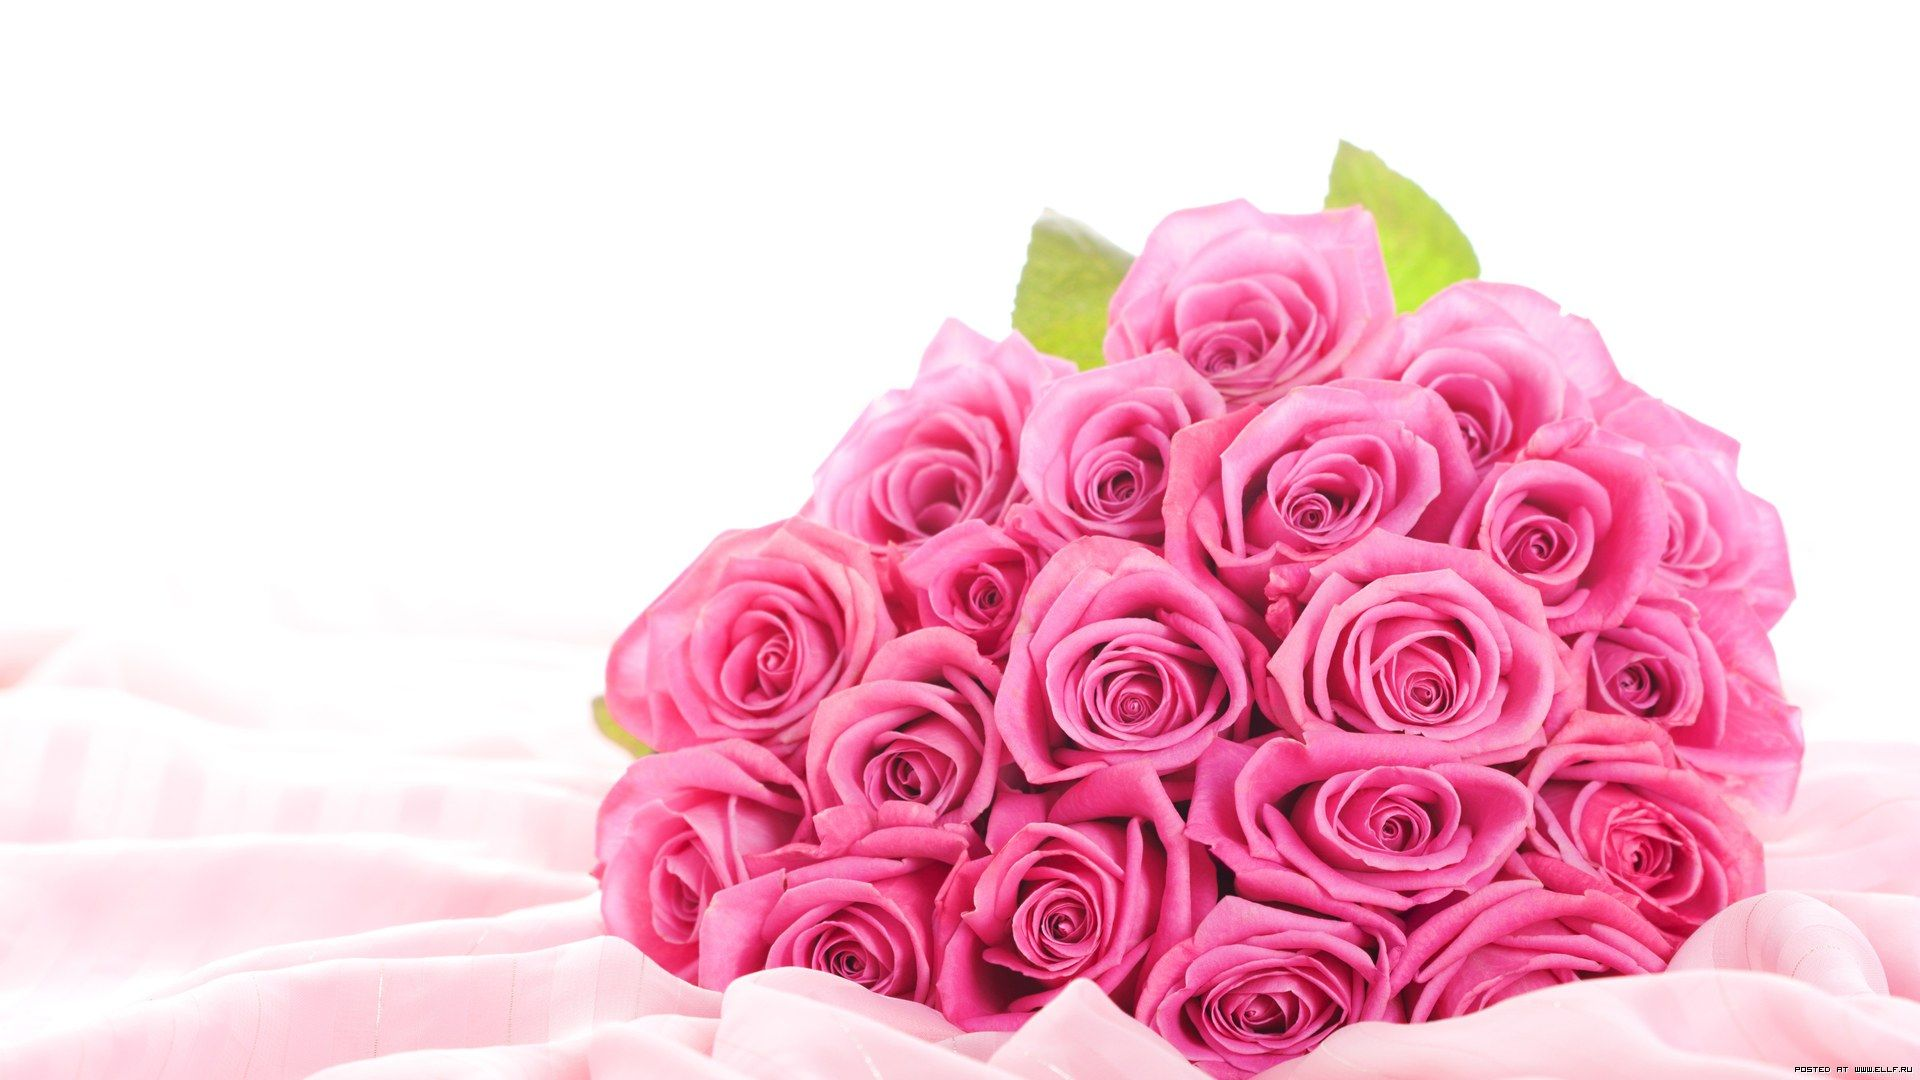 Pink Rose Flower Dekstop Hd Wallpaper #2828 Wallpaper ...